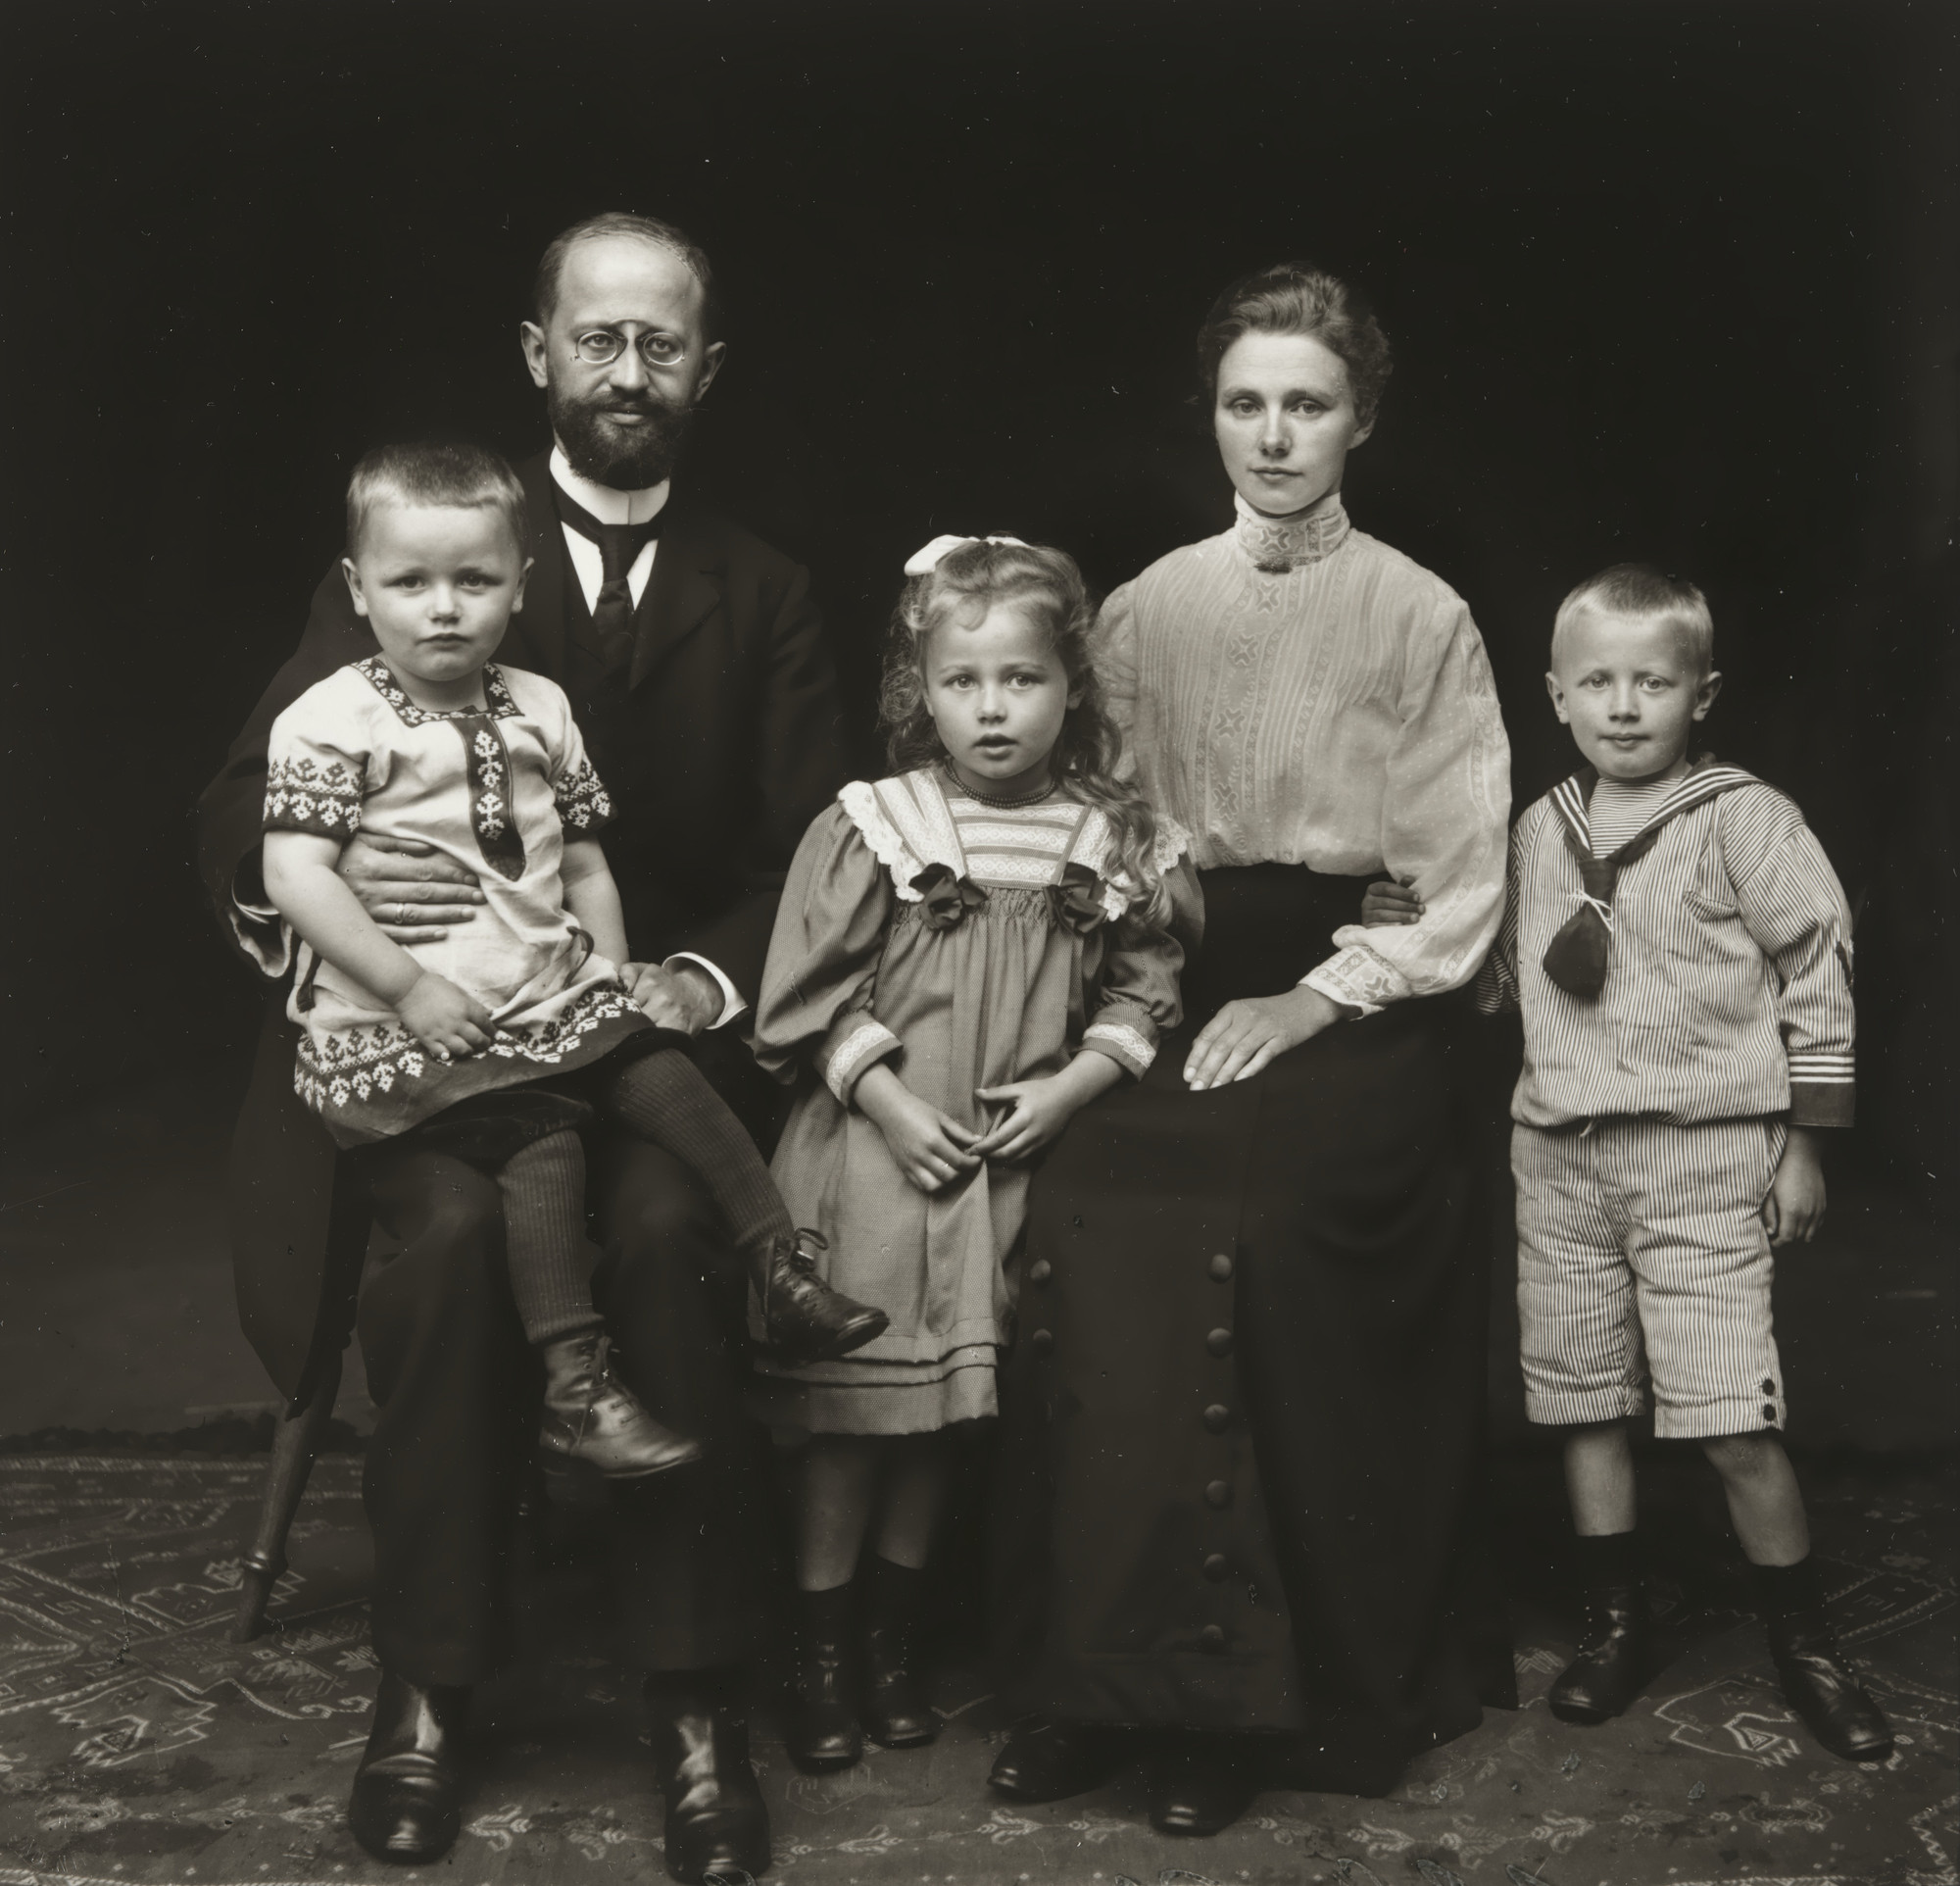 August Sander. Village Pastor and Family. 1920-25